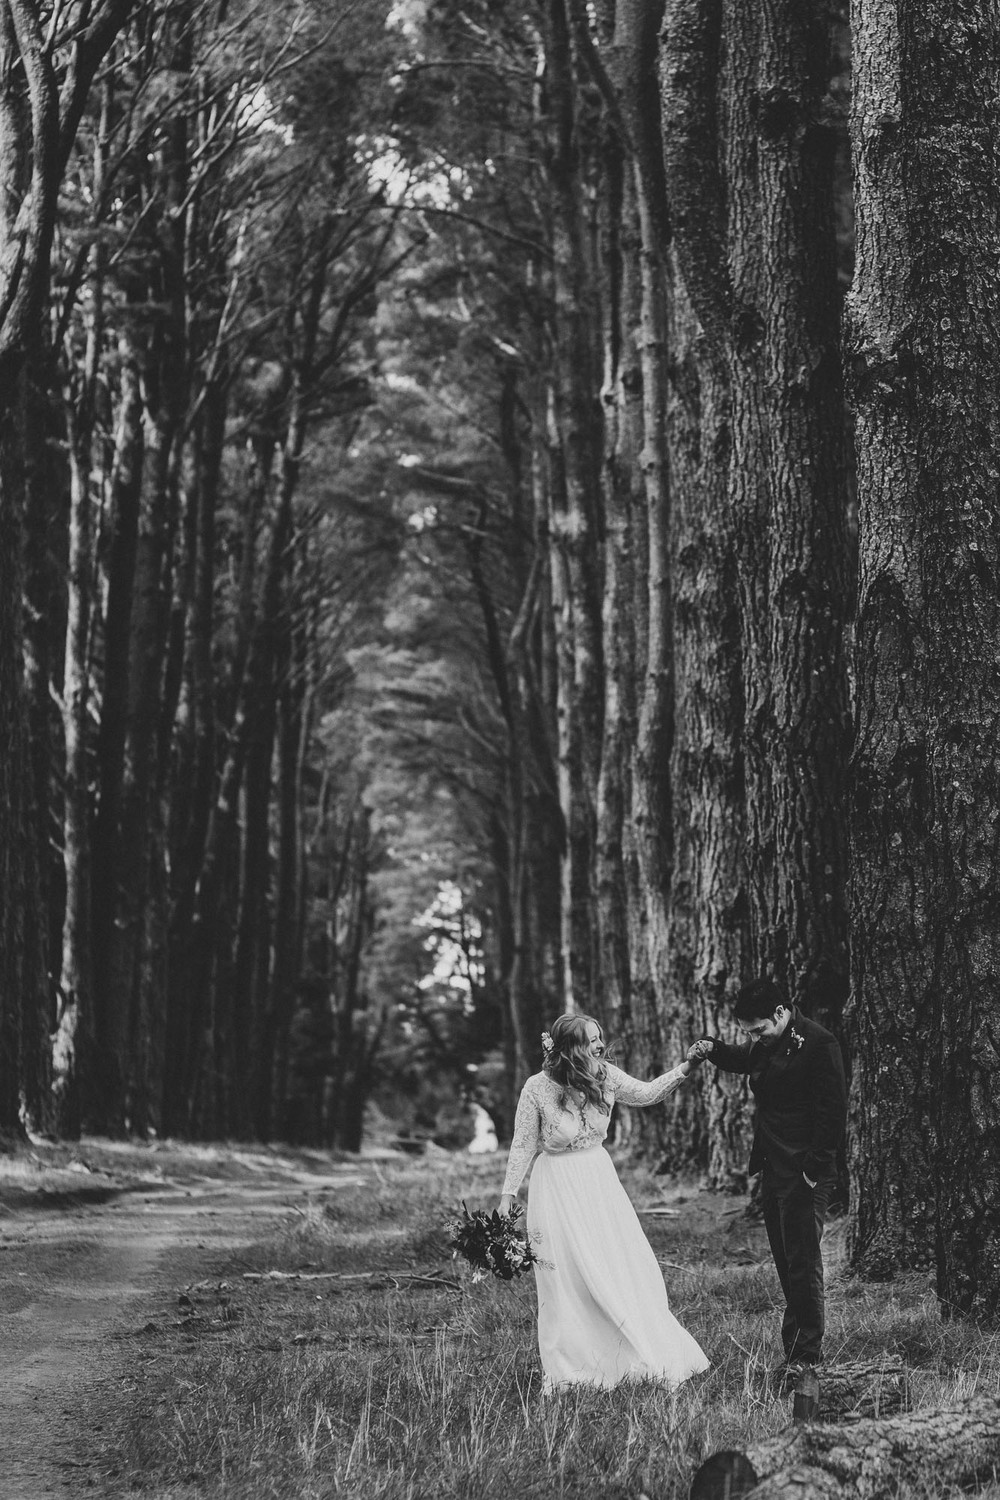 Melbourne wedding photographer, Marnie Hawson